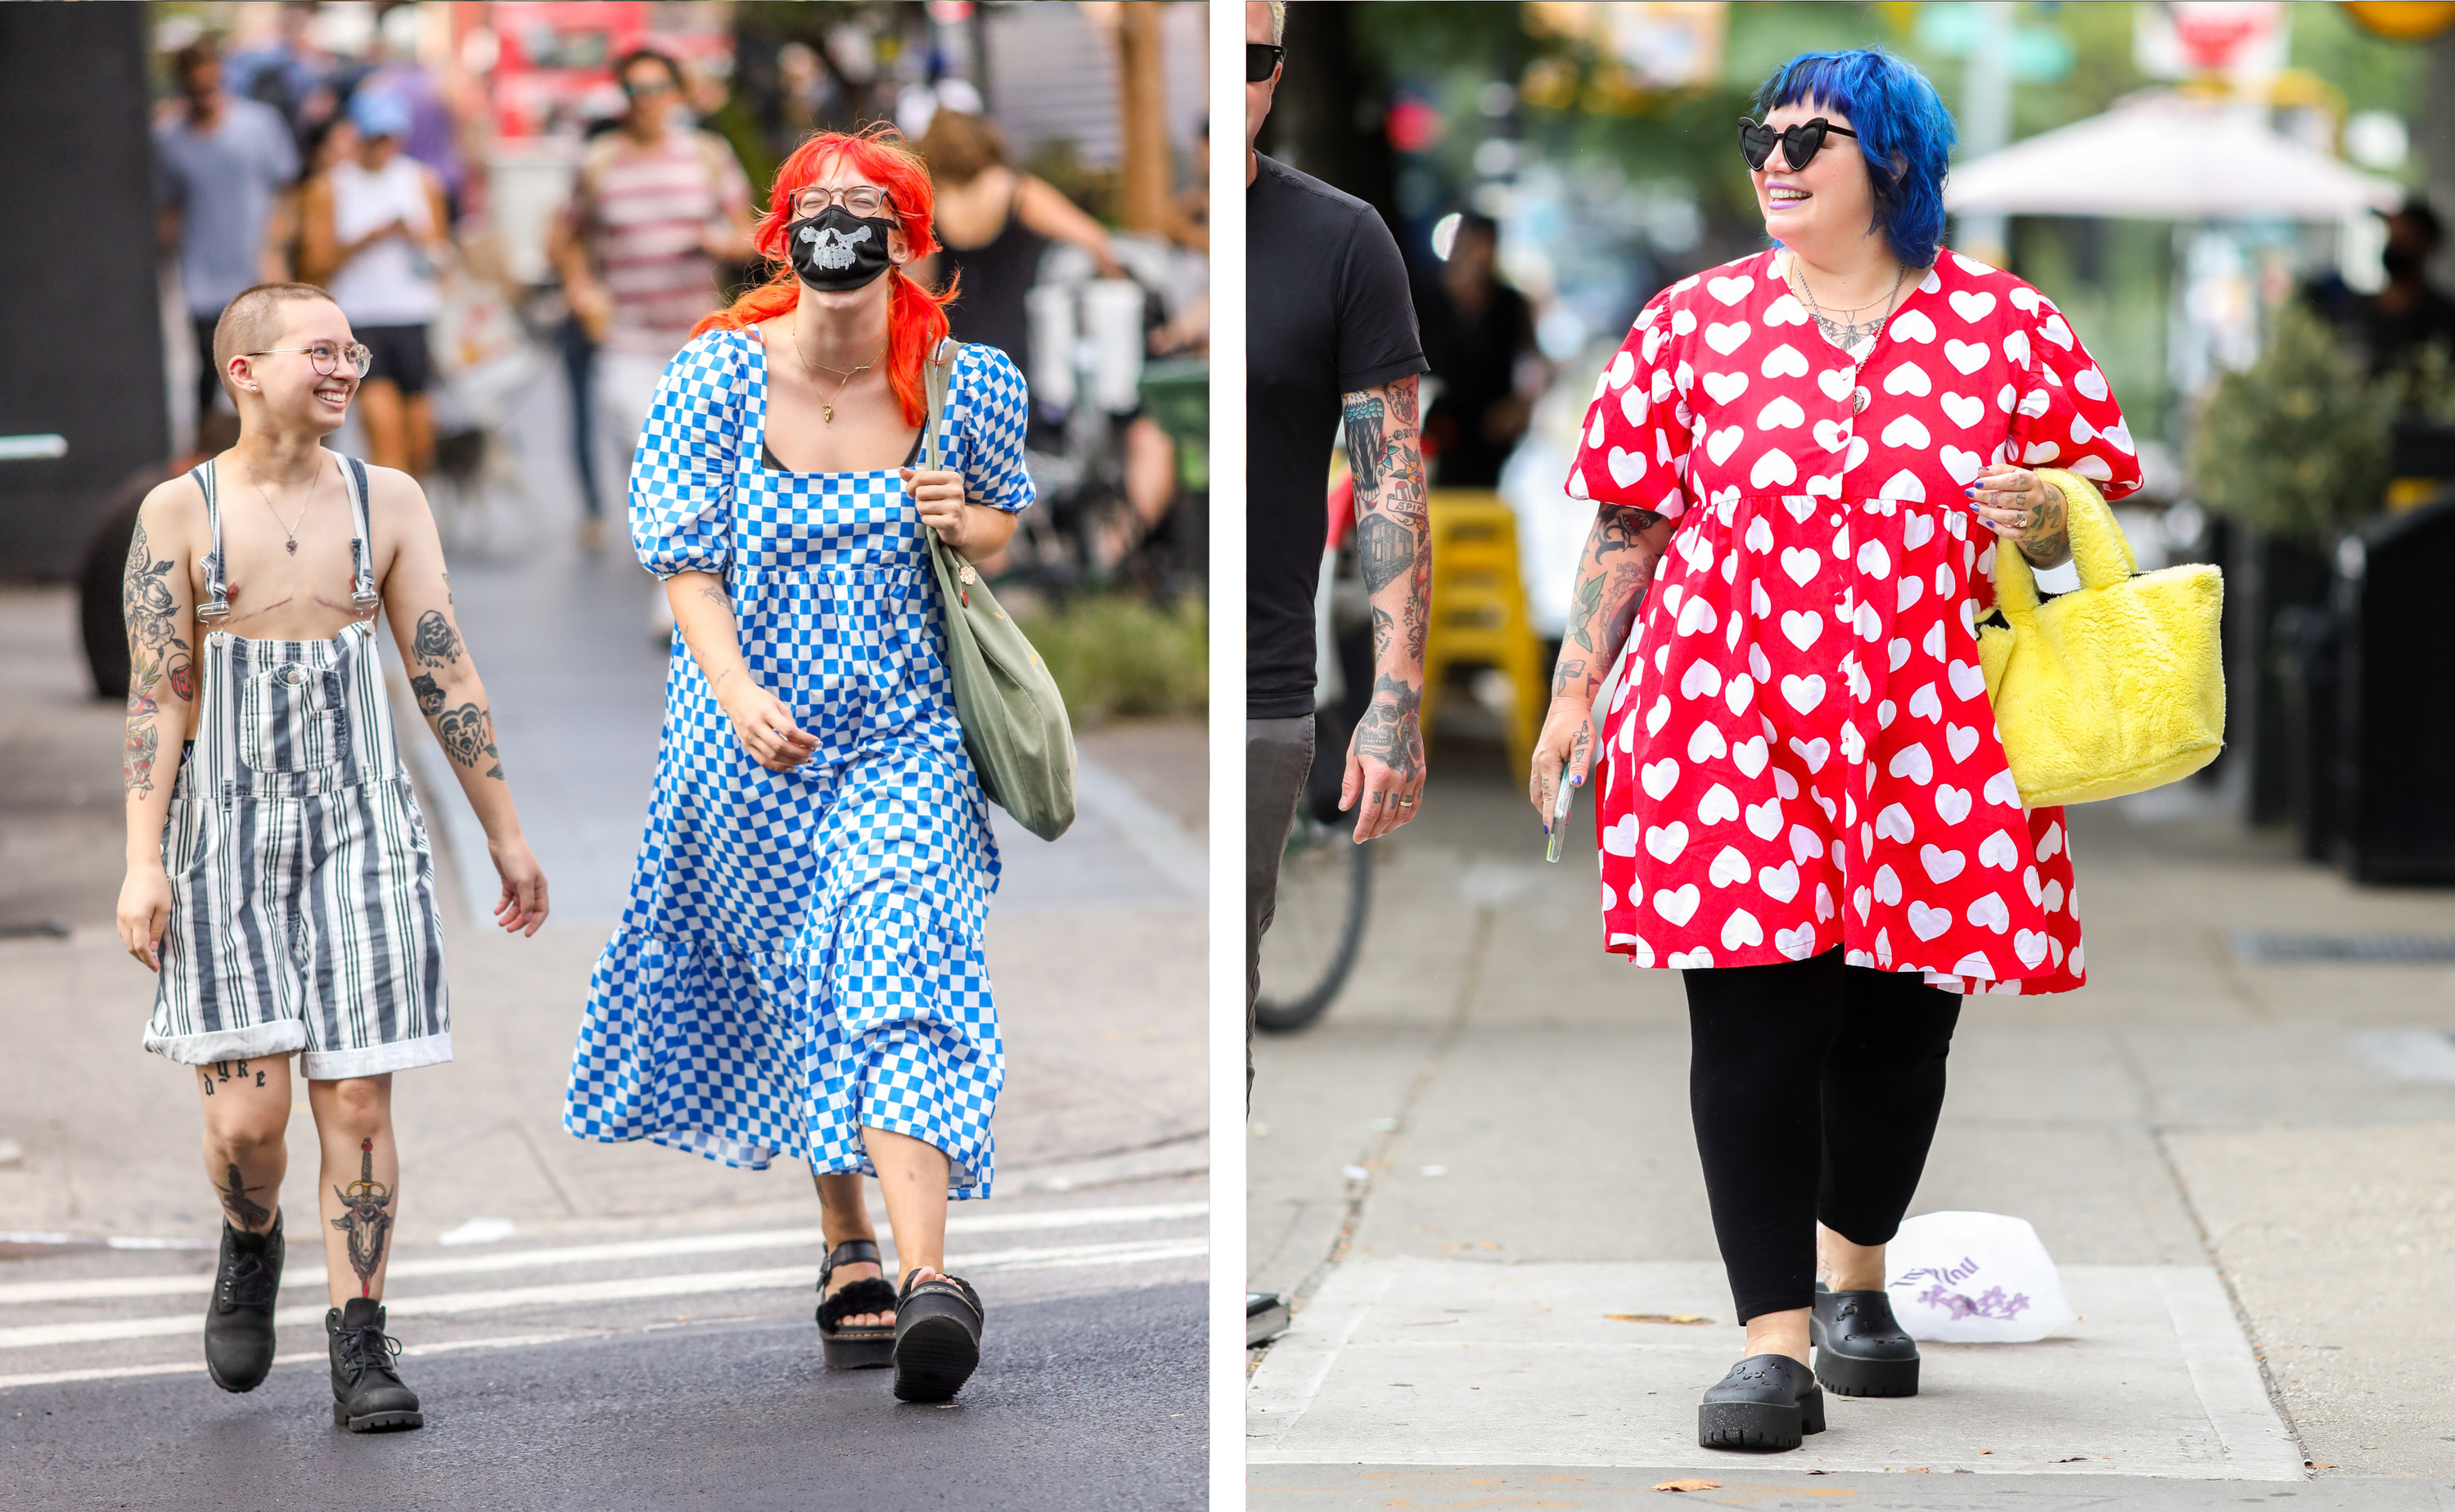 Left, two people in patterned clothes and black shoes cross the street, right, a woman in colorful primary colors and gucci clogs walks down the sidewalk